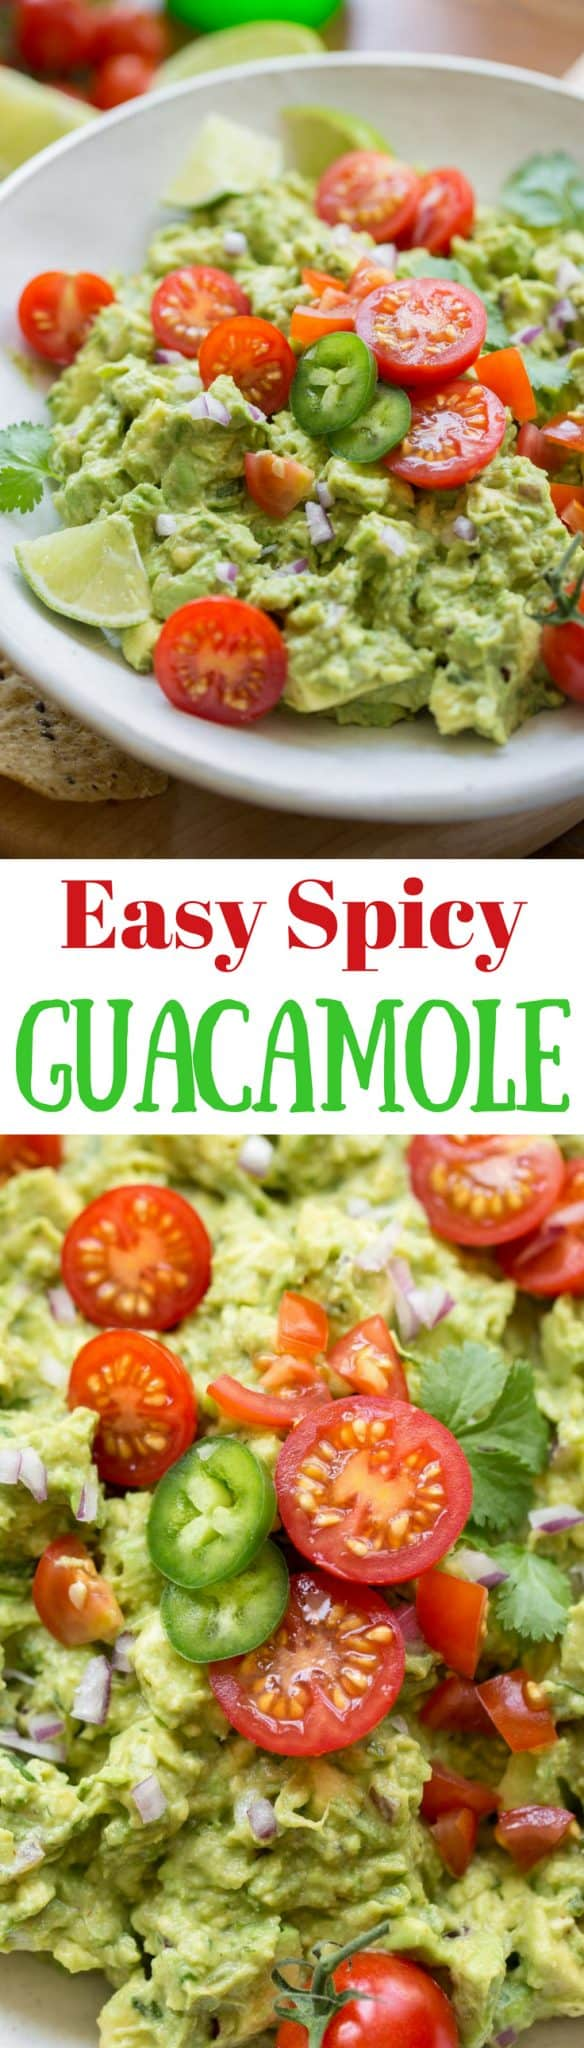 Easy Spicy Guacamole ~ incredibly delicious made fresh at your own table, hand crafted and seasoned just the way you like it ... and it's super easy to make too. www.savingdessert.com